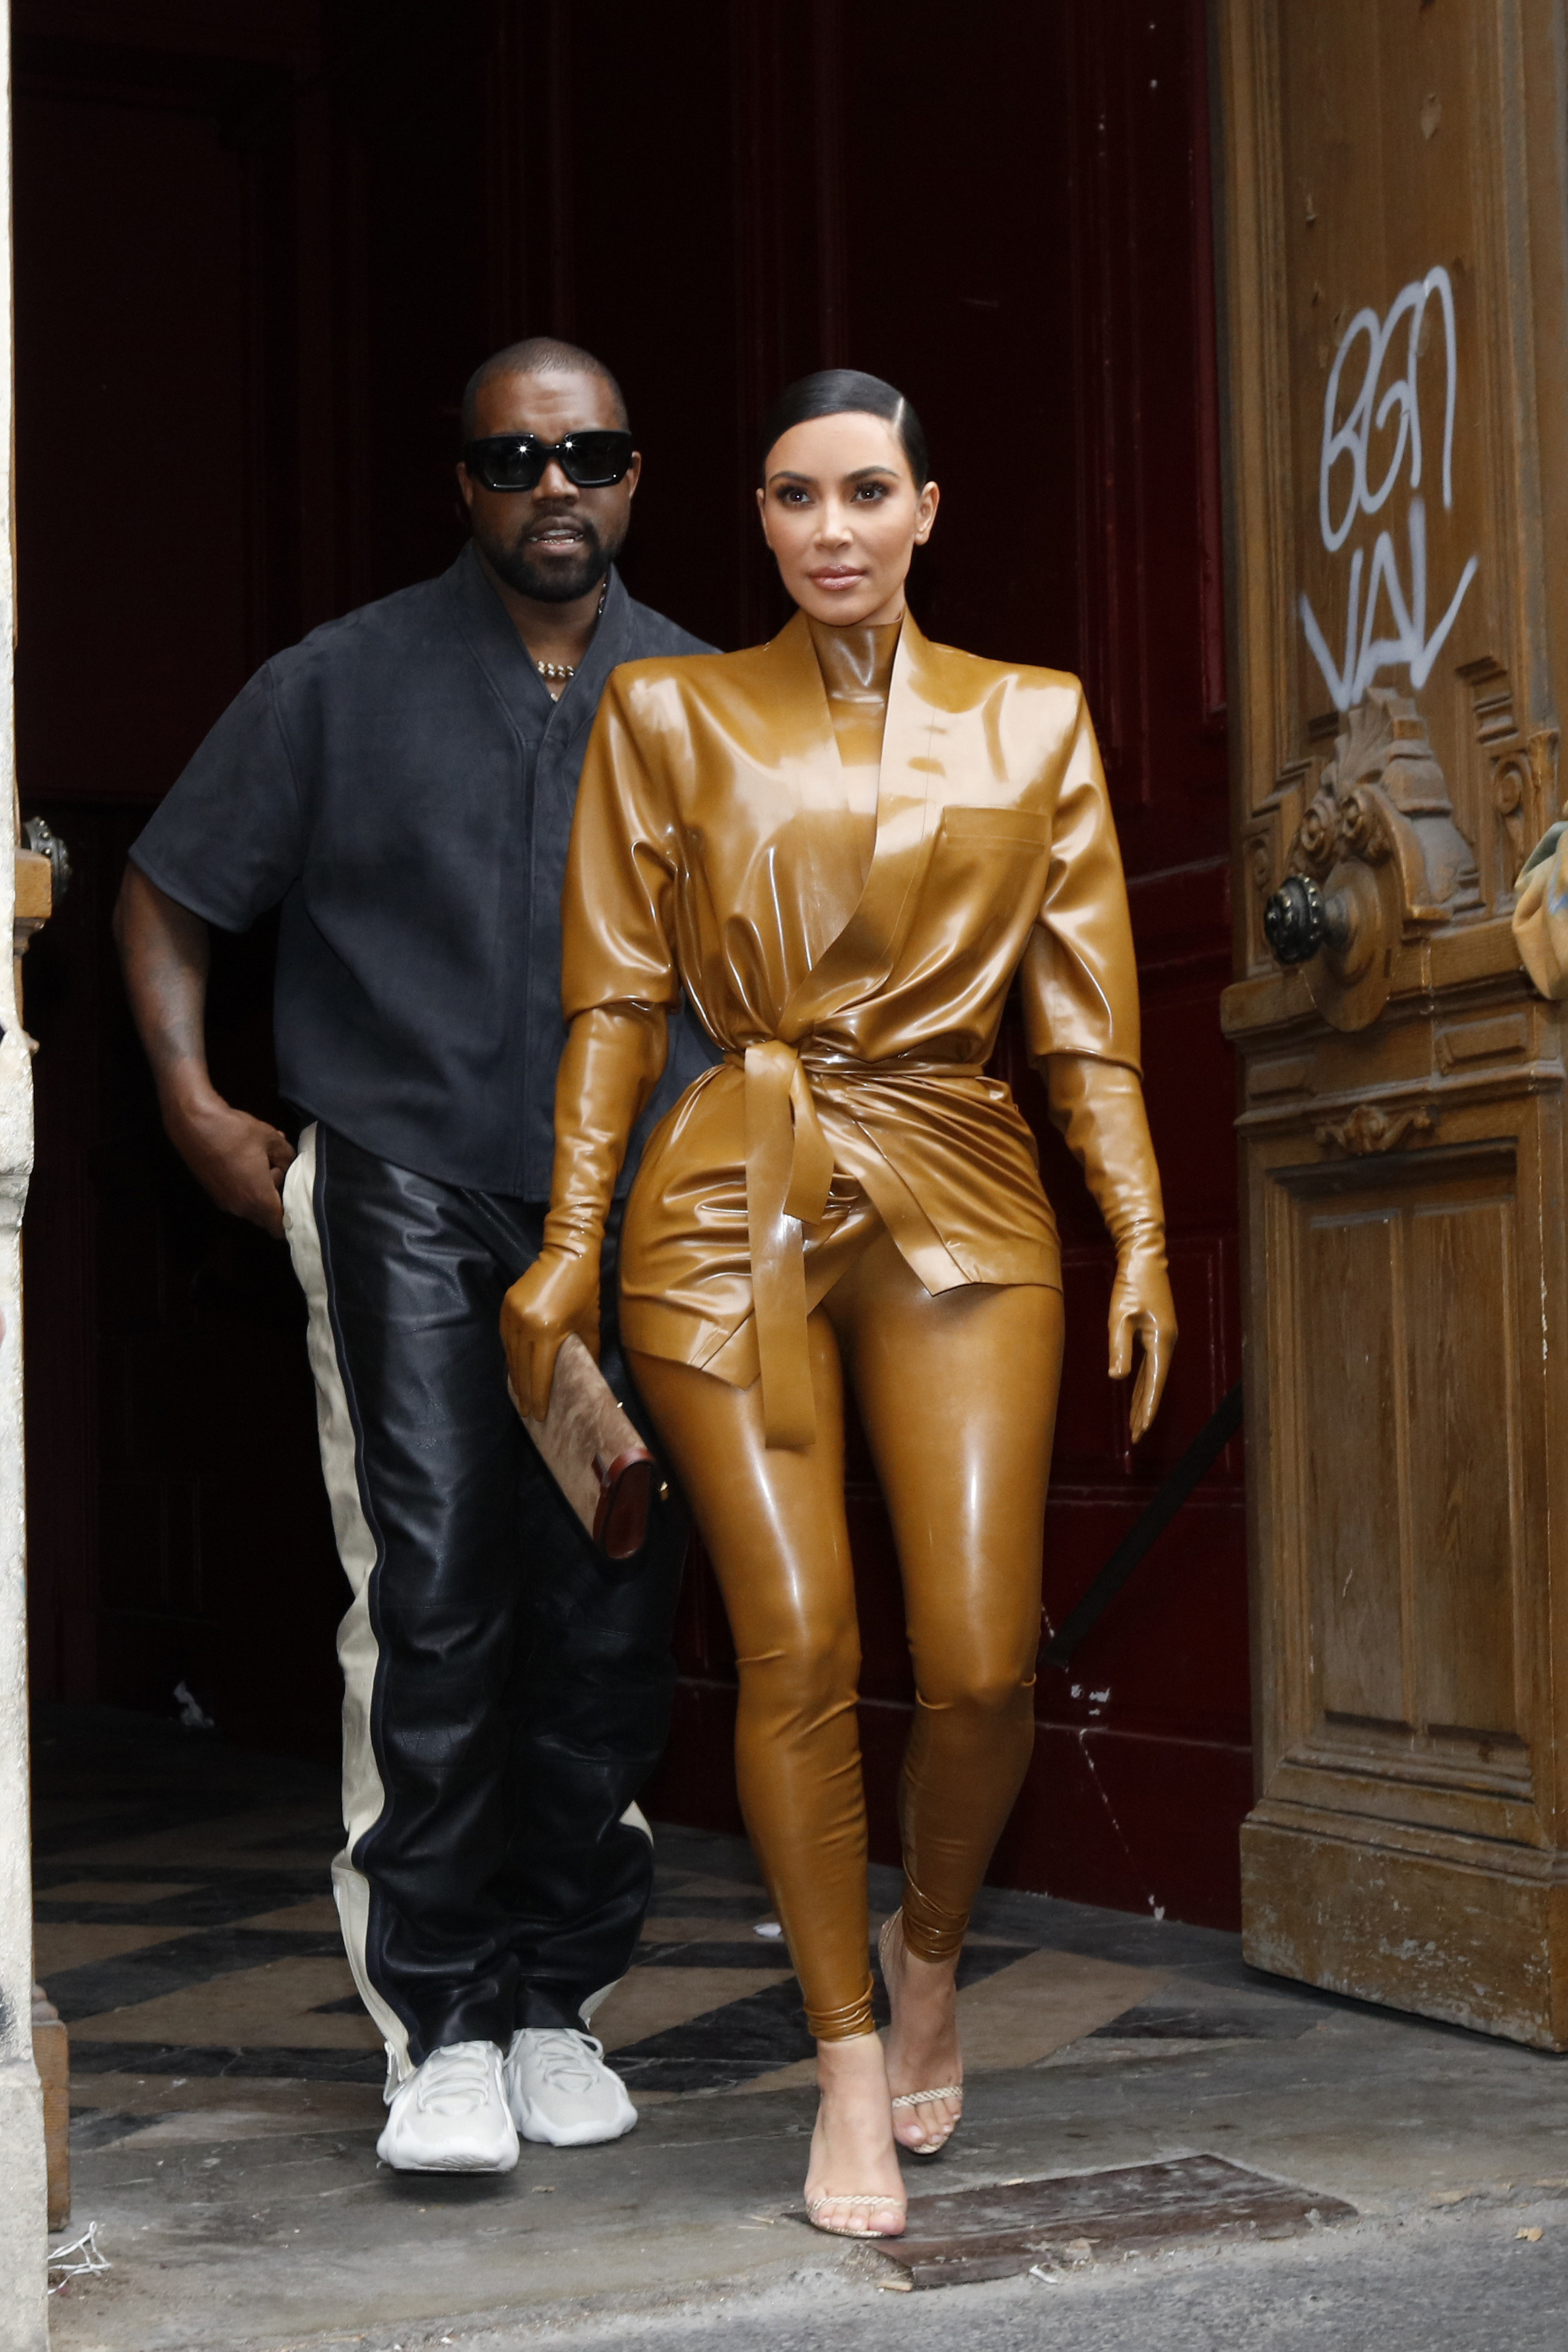 Kanye on the left and Kim, wearing a latex bodysuit with gloves, walking out of a building together